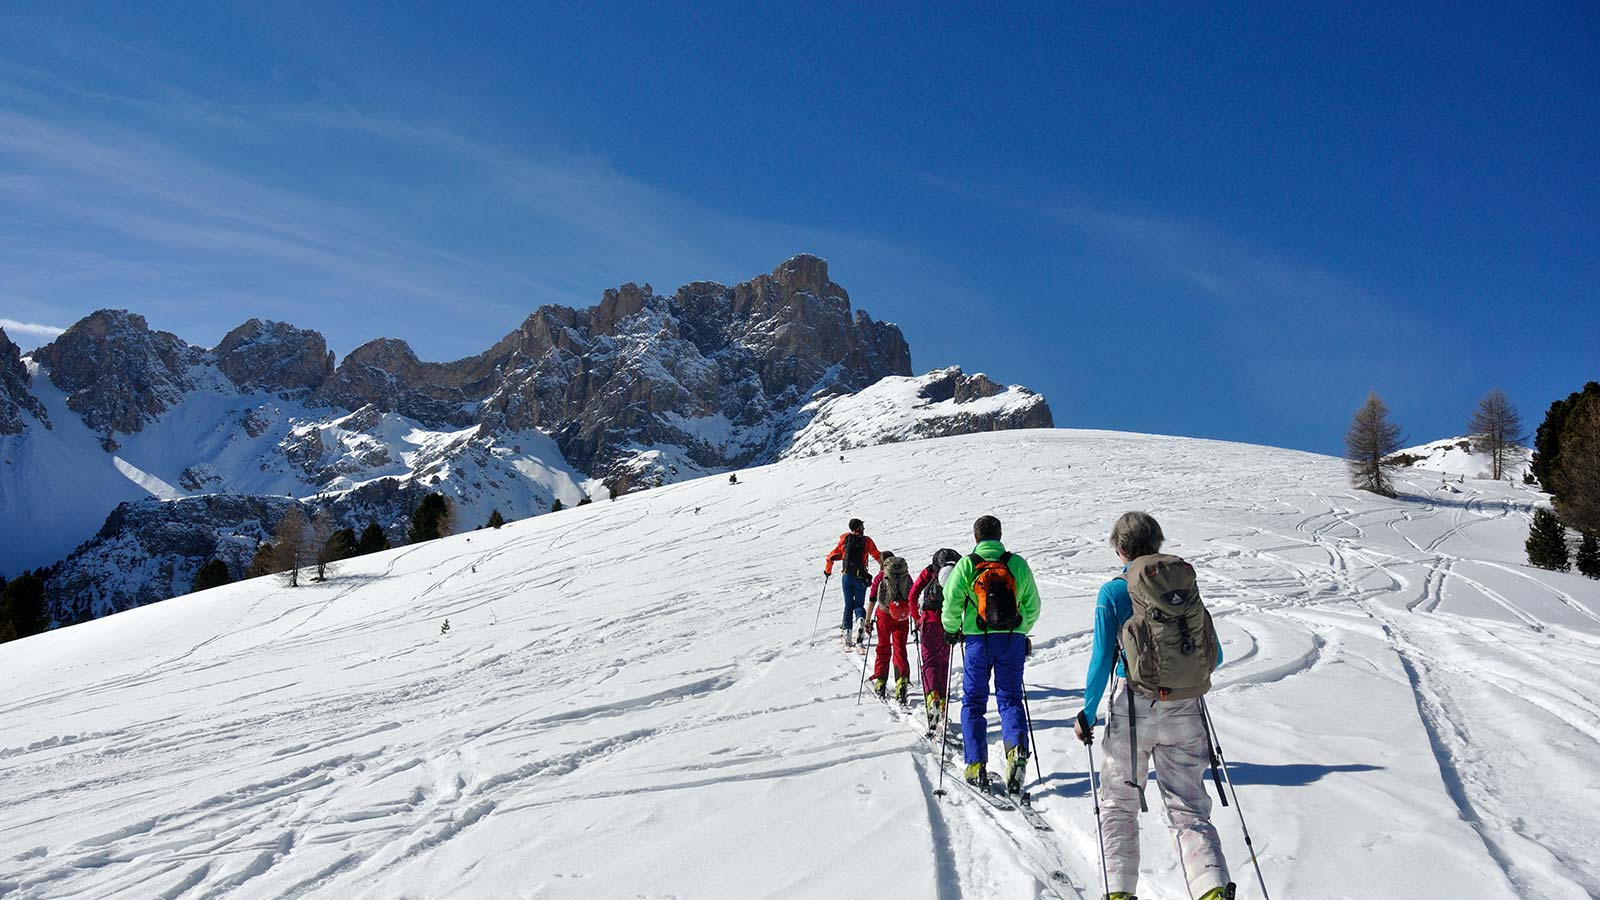 Skiers in a row in the Natural Park Fanes-Sennes-Braies